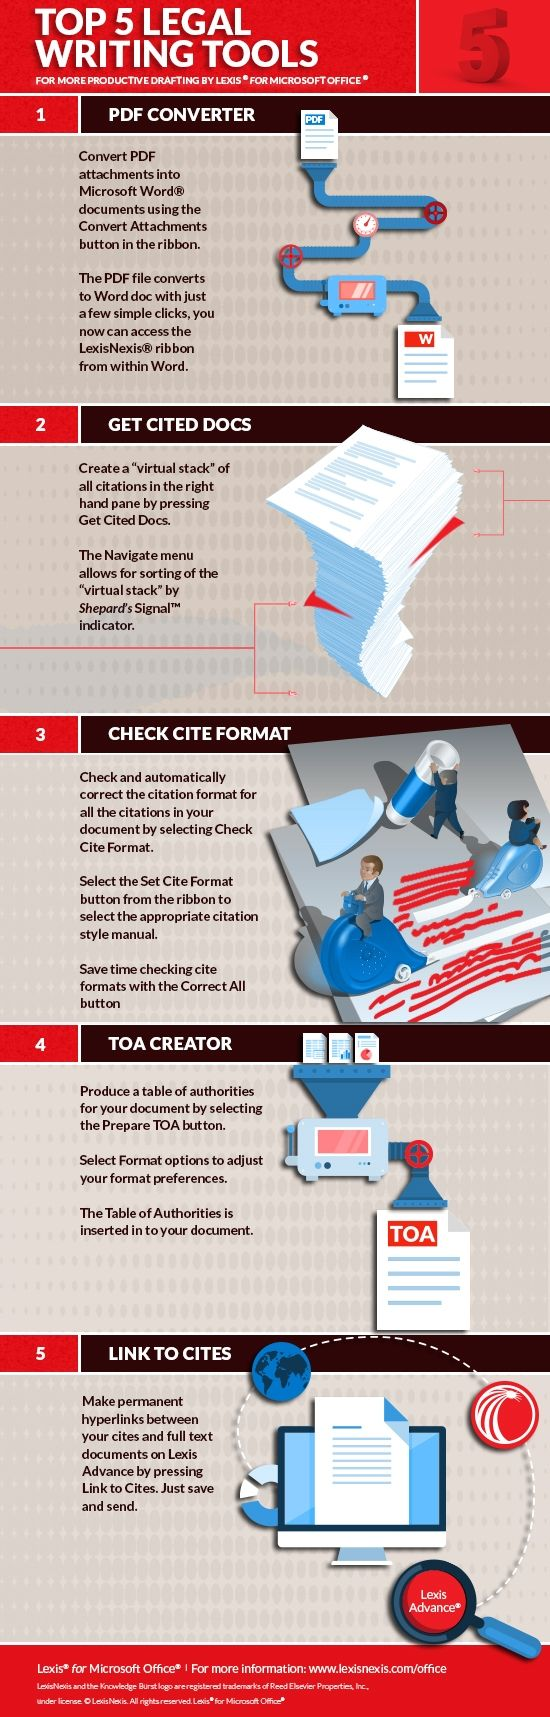 Infographic Top 5 Legal Writing Tools Infographic